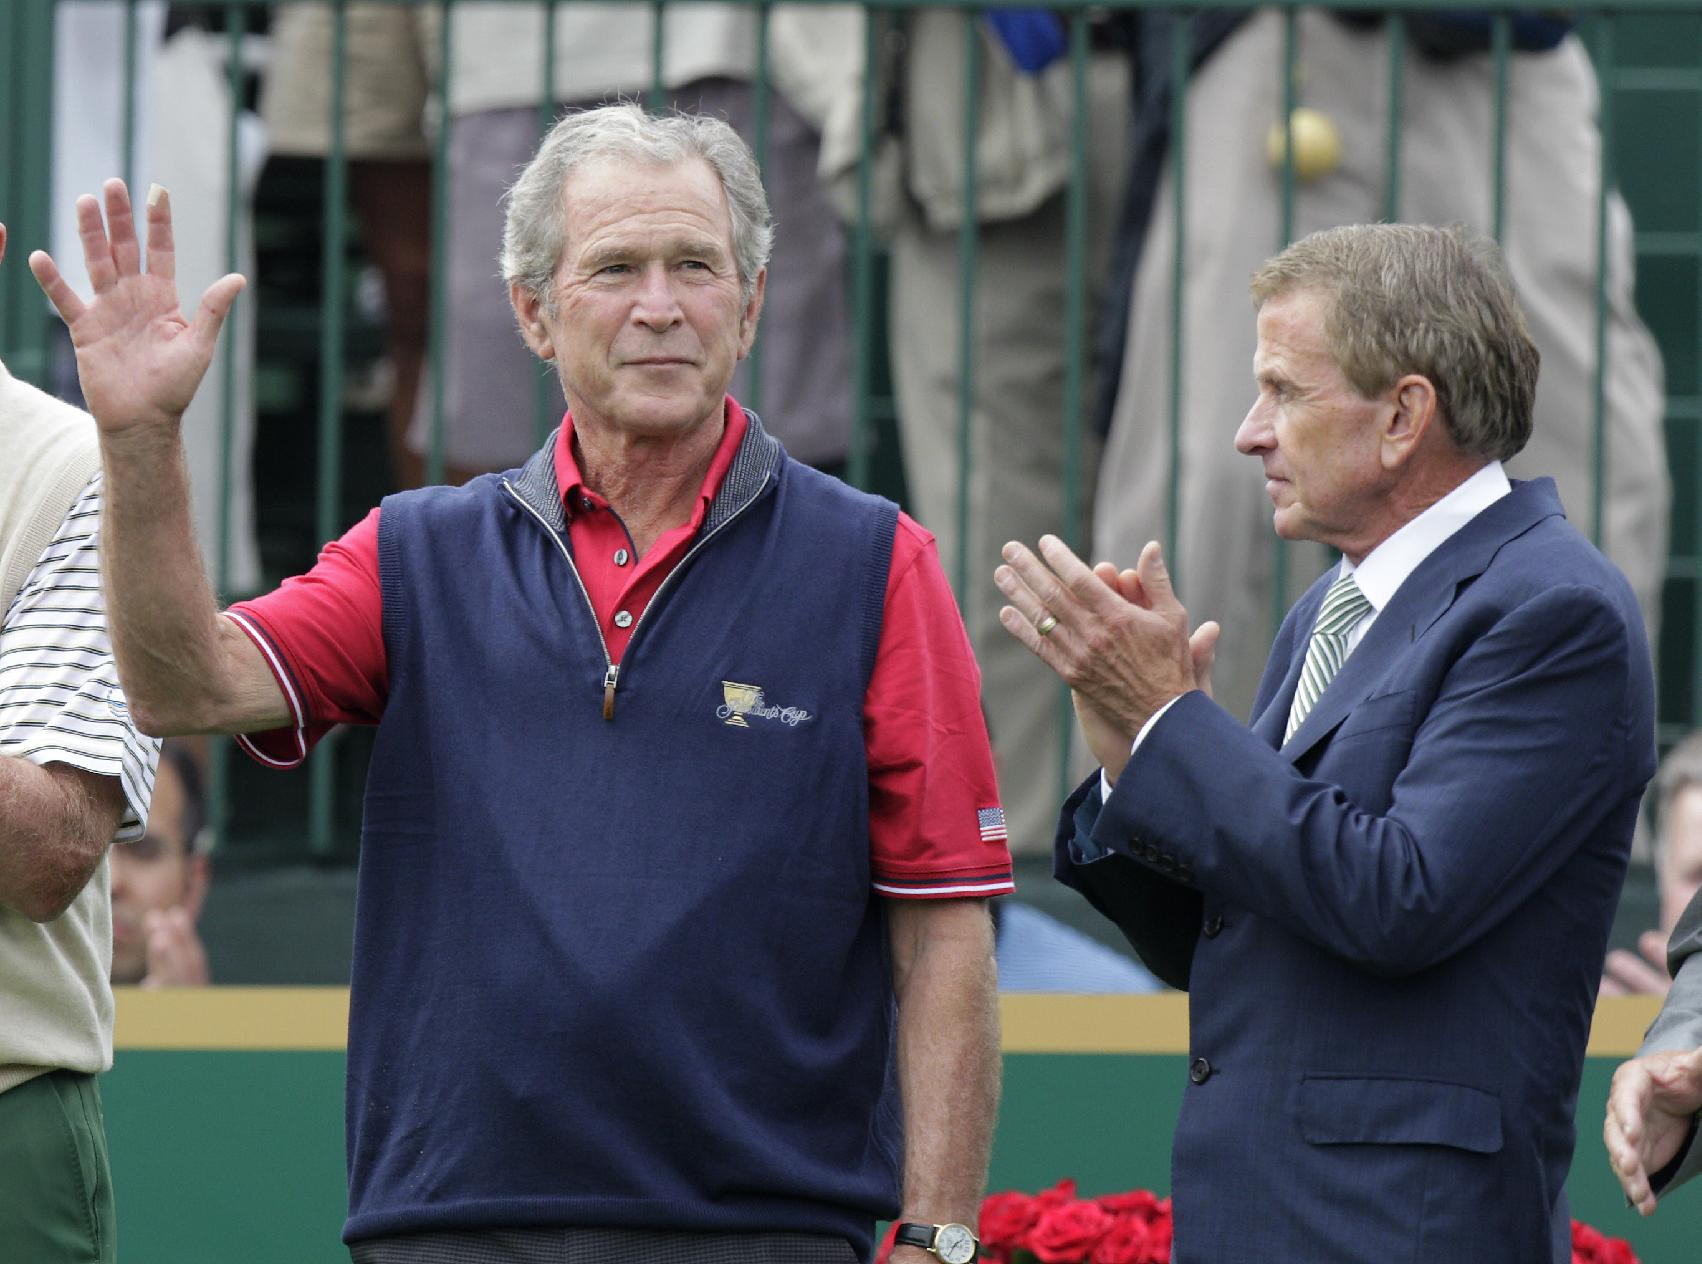 Former President George W. Bush, left, and PGA Tour commissioner Tim Finchem are introduced before the start of the four-ball match at the Presidents Cup golf tournament at Muirfield Village Golf Club Thursday, Oct. 3, 2013, in Dublin, Ohio